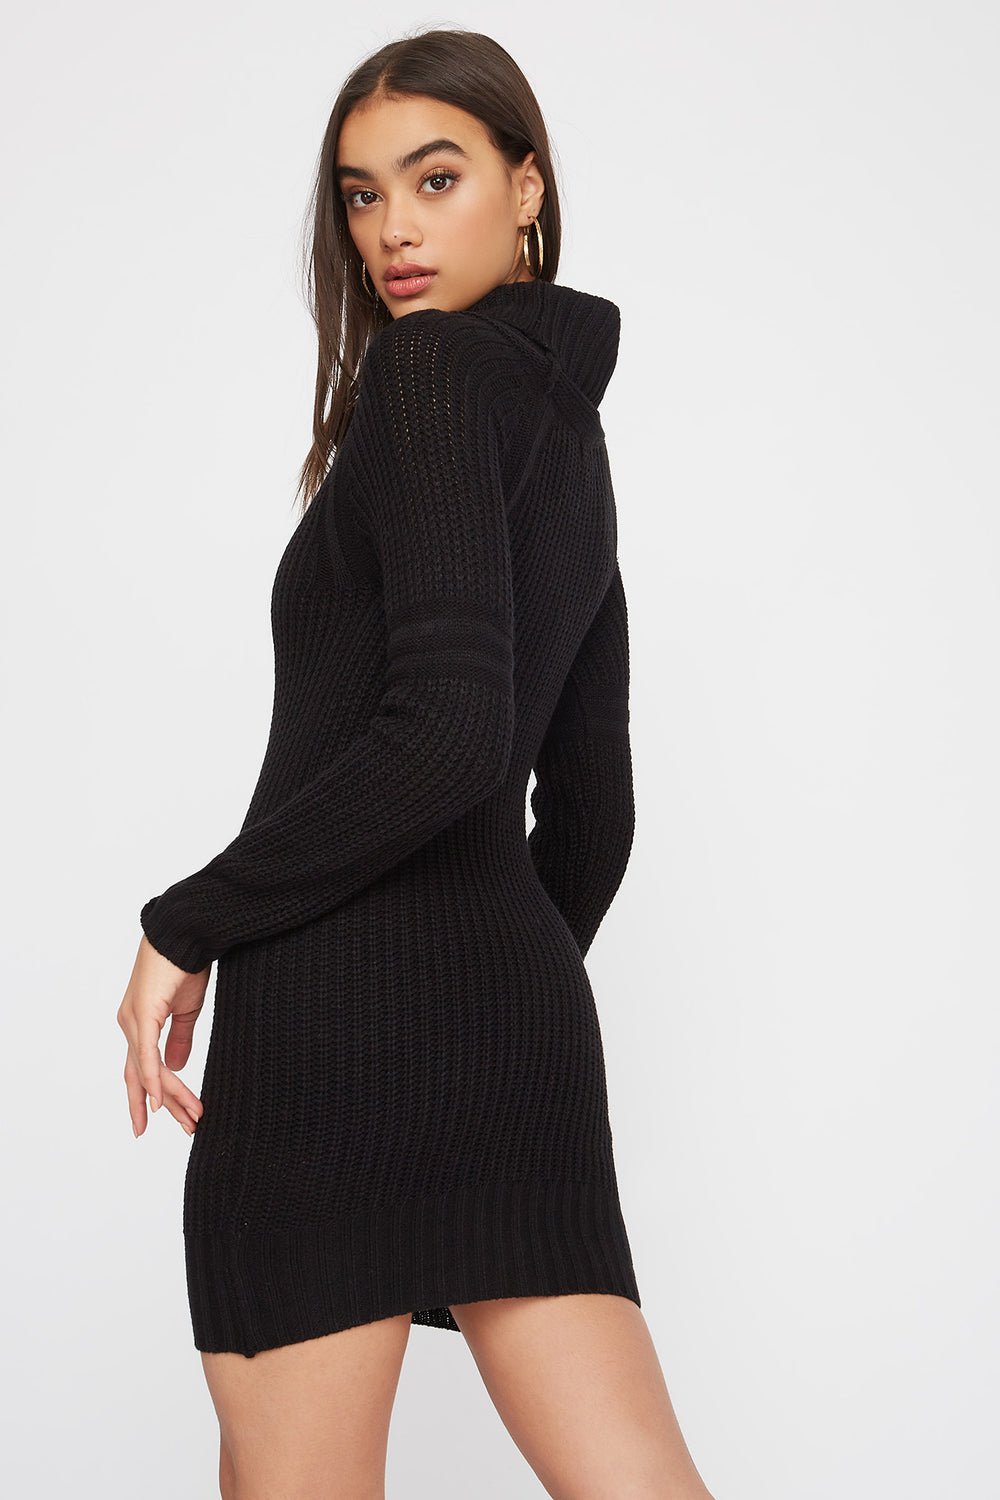 Cowl Neck Knit Sweater Dress Black